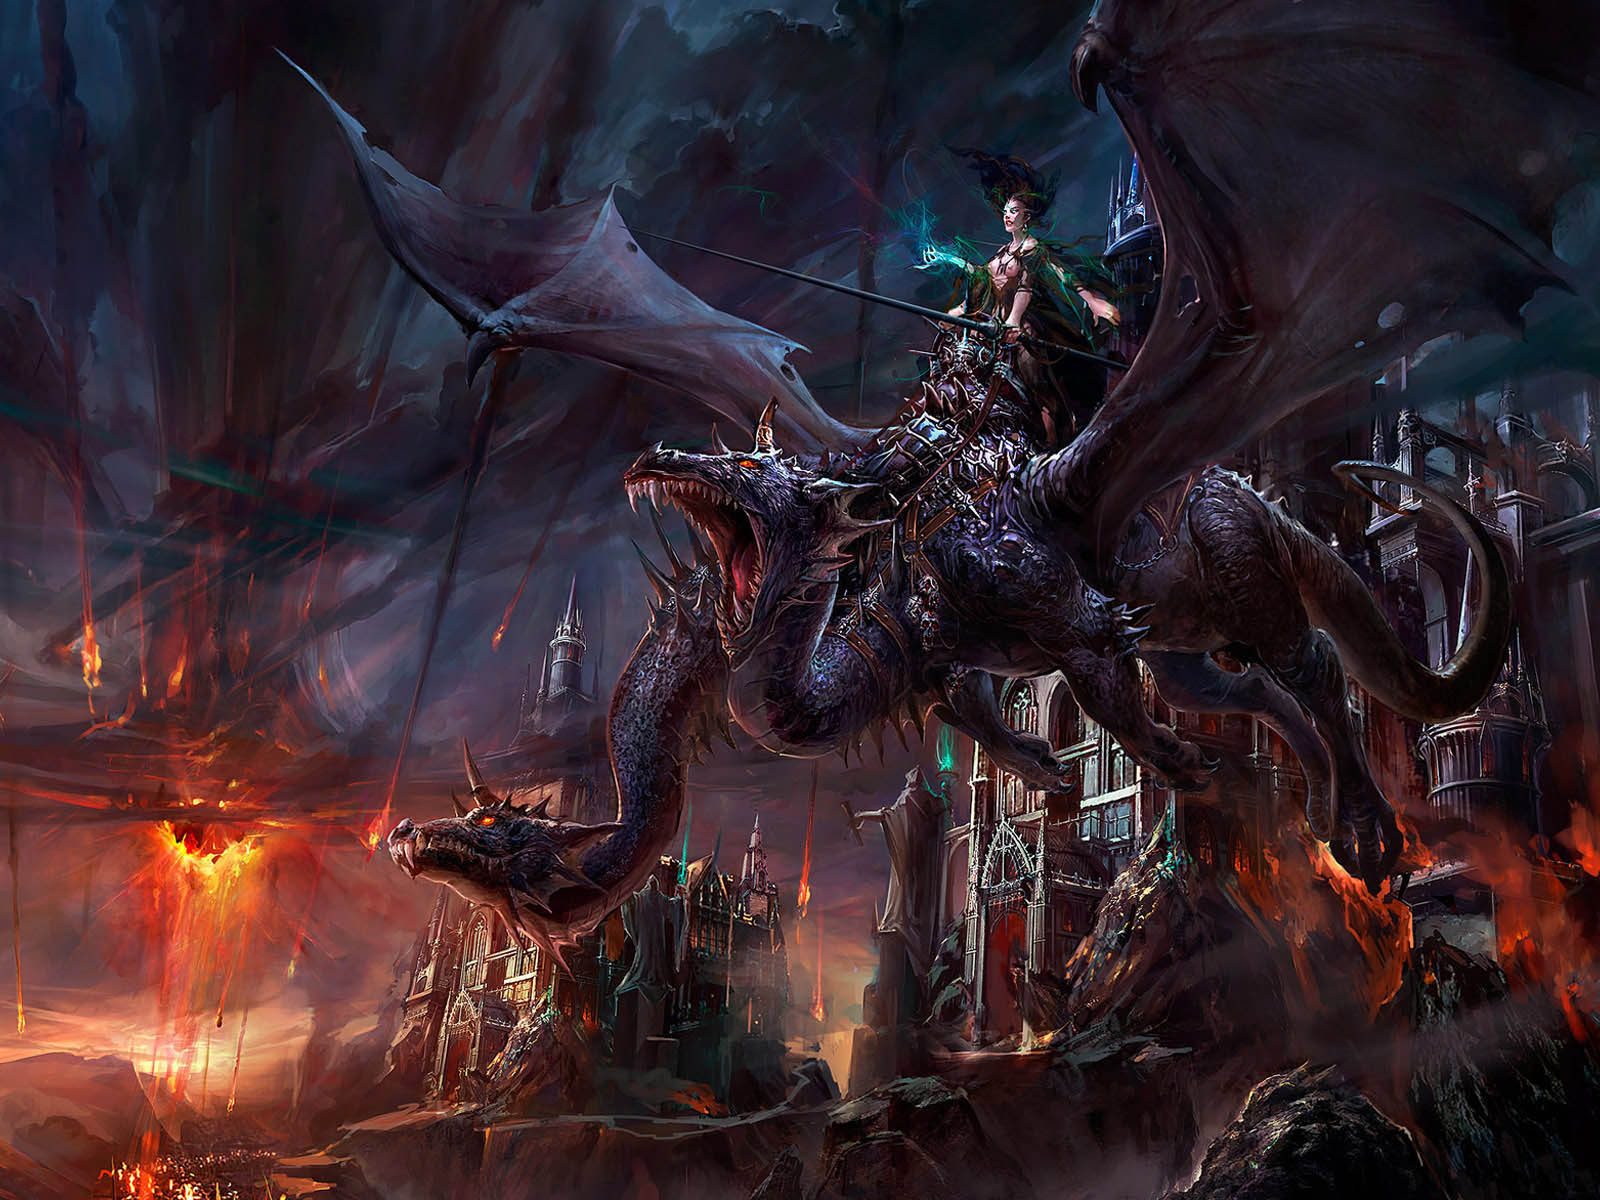 http://2.bp.blogspot.com/-M6ZVlgGPmzs/TdpOv1fTzHI/AAAAAAAADu8/OIlKk_Y2Dww/s1600/15243_1_other_wallpapers_dragon.jpg